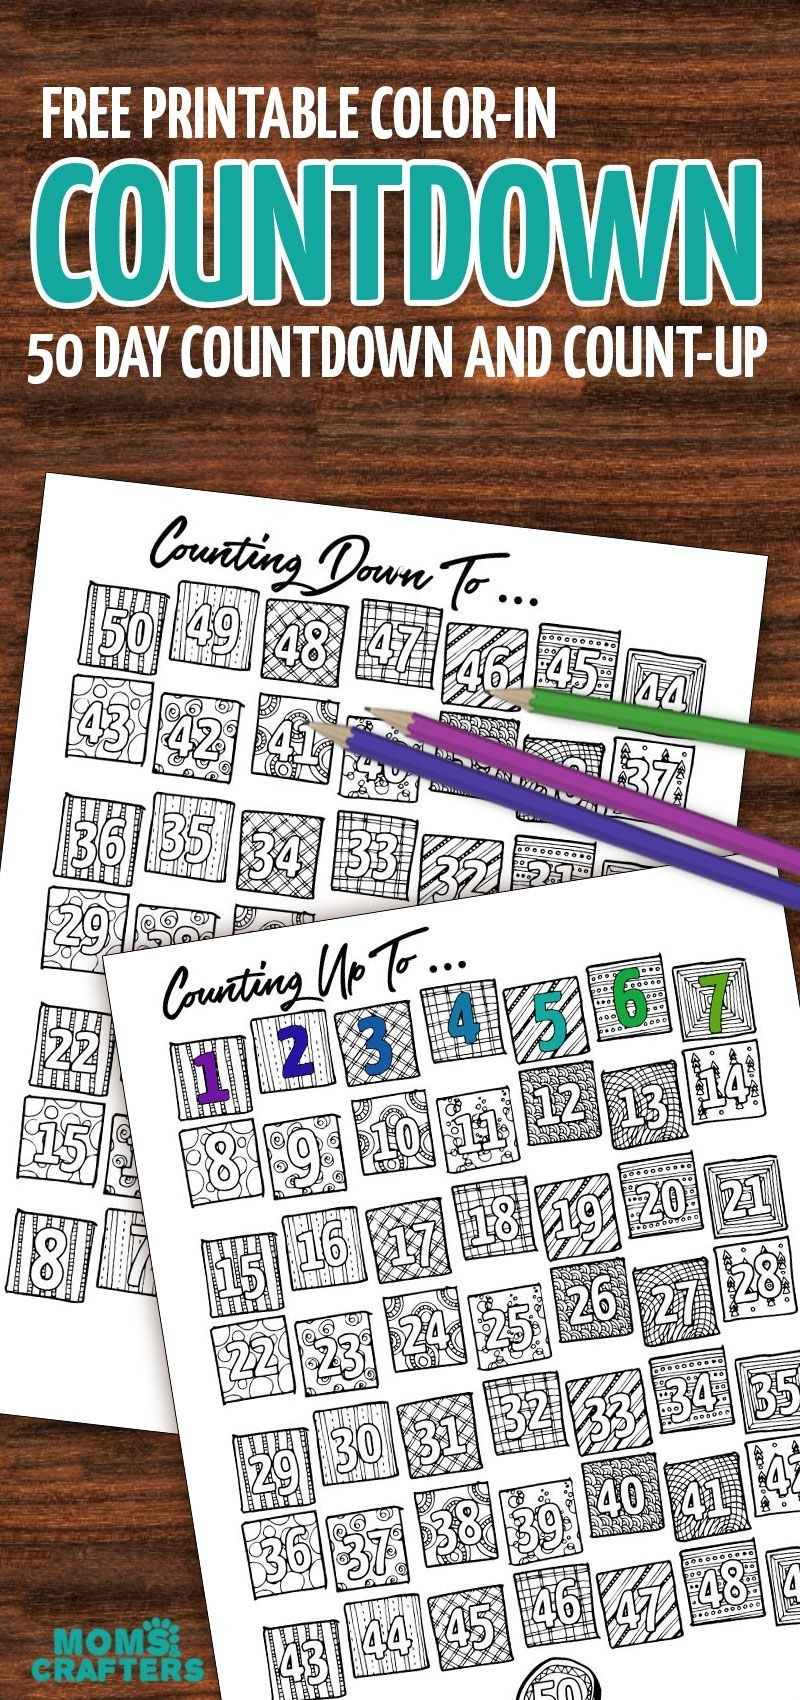 Grab This Fun Color-In Countdown And Progress Tracker-Blank Calendar Template Countdown